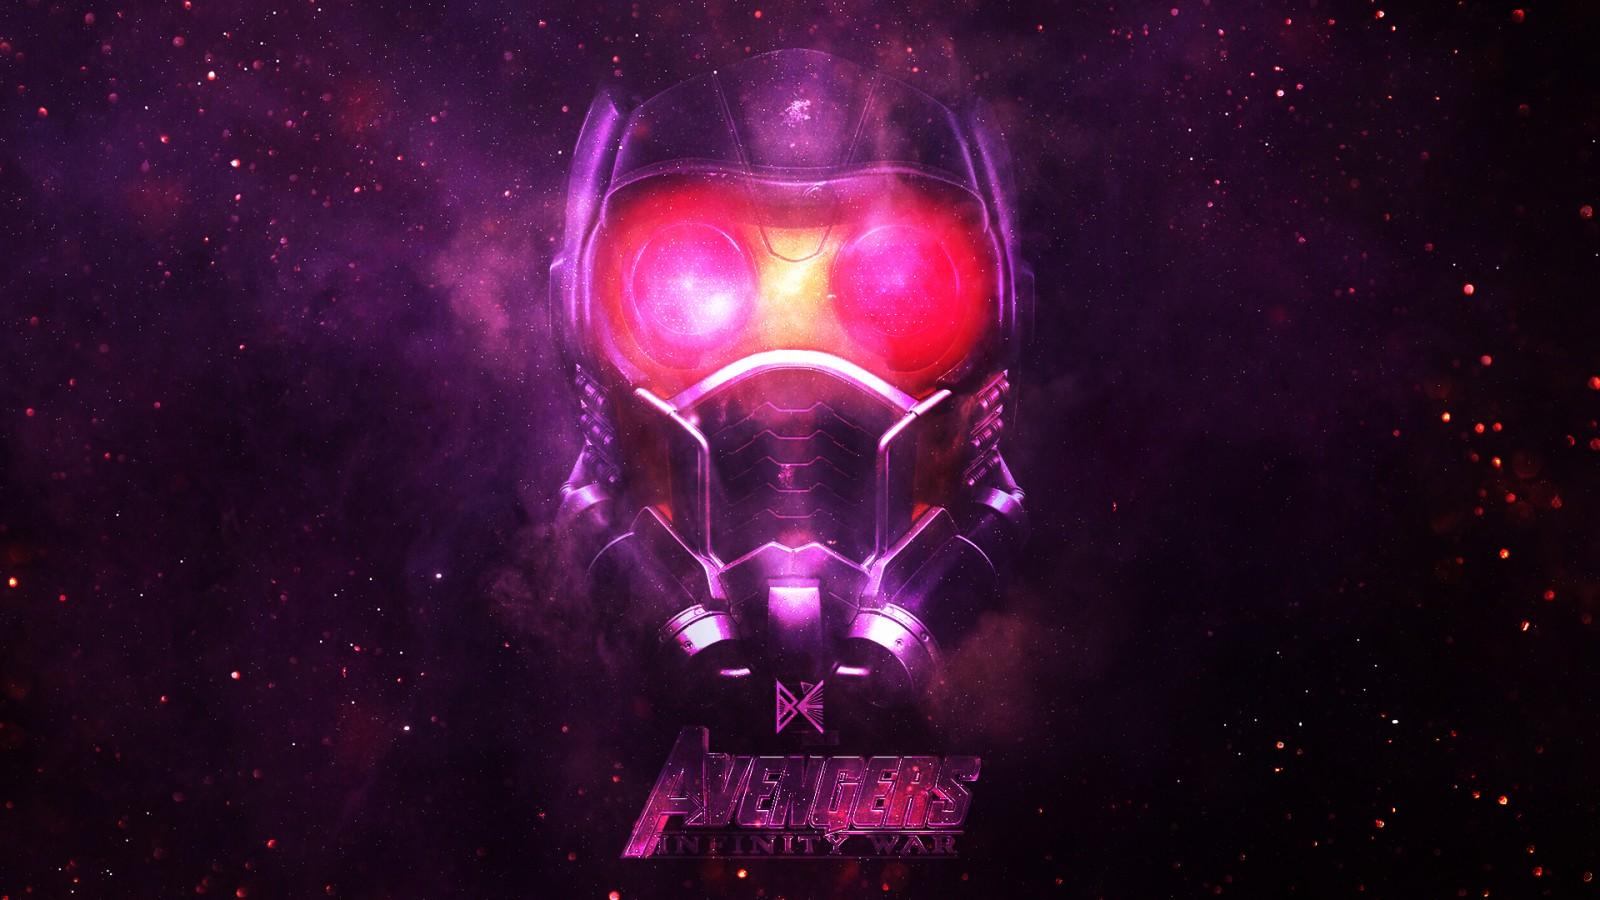 Cute Anime 3d Wallpaper Star Lord Avengers Infinity War Wallpapers Hd Wallpapers